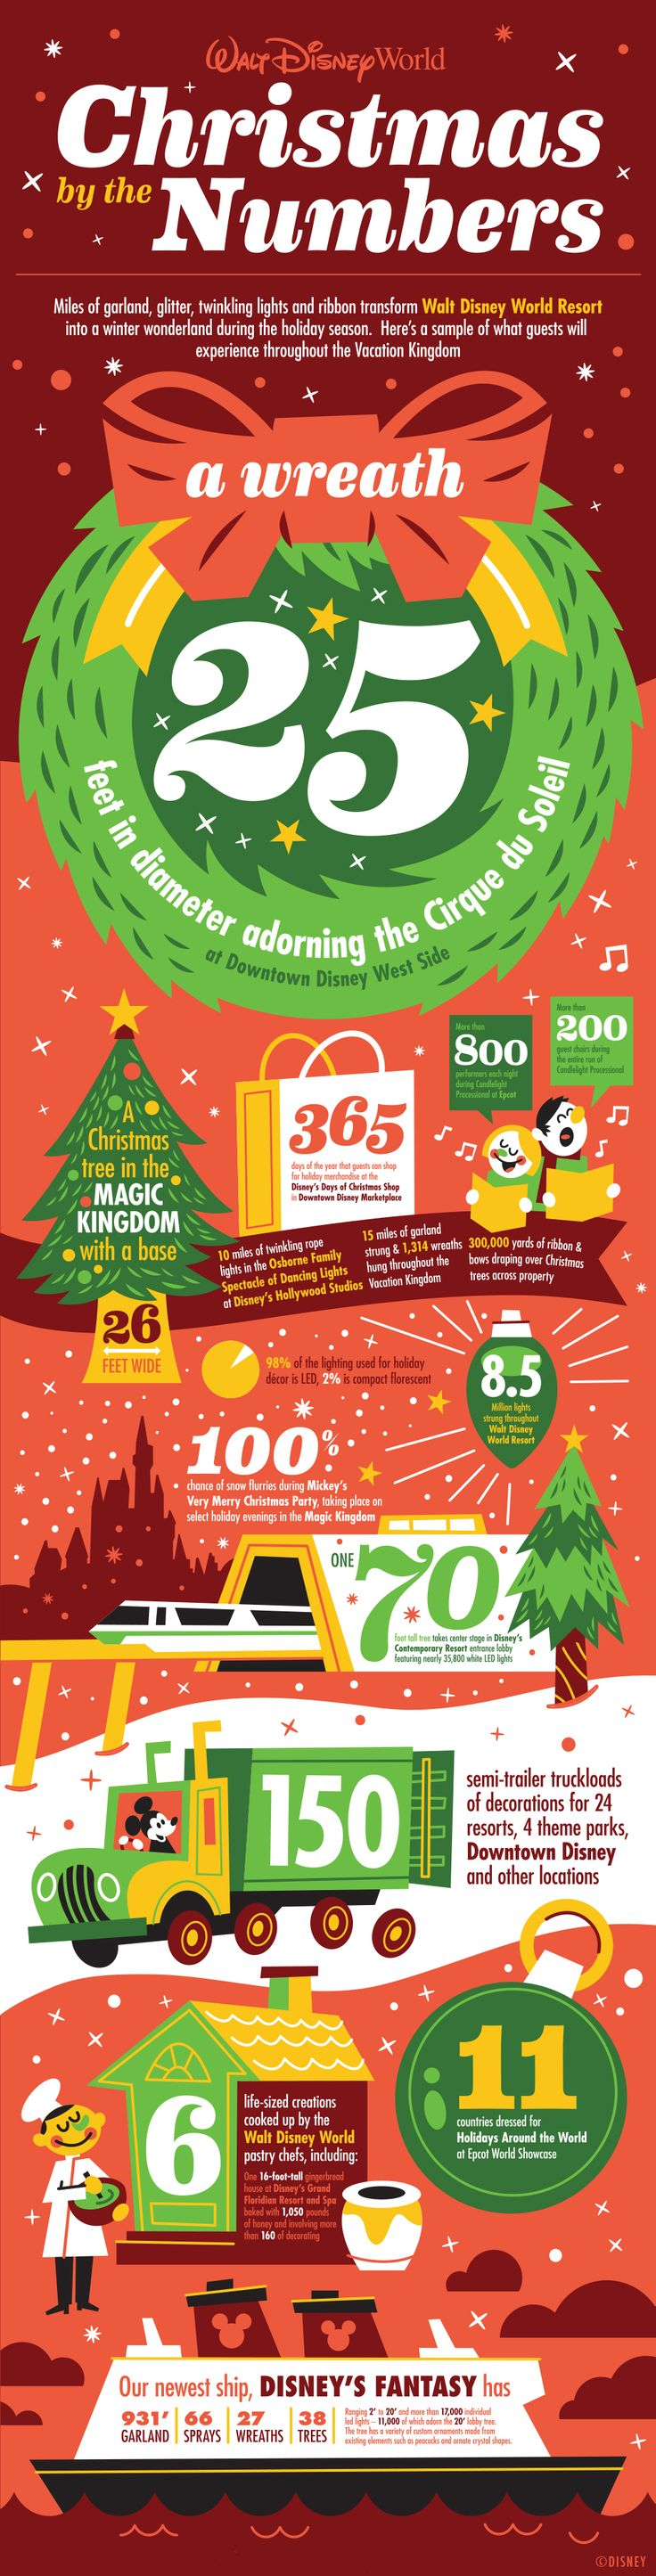 Infographic: Just what do the holidays at Walt Disney World look like? The magic is made possible by our amazing & talented Holiday Services team who works year round to prepare for these celebrations.